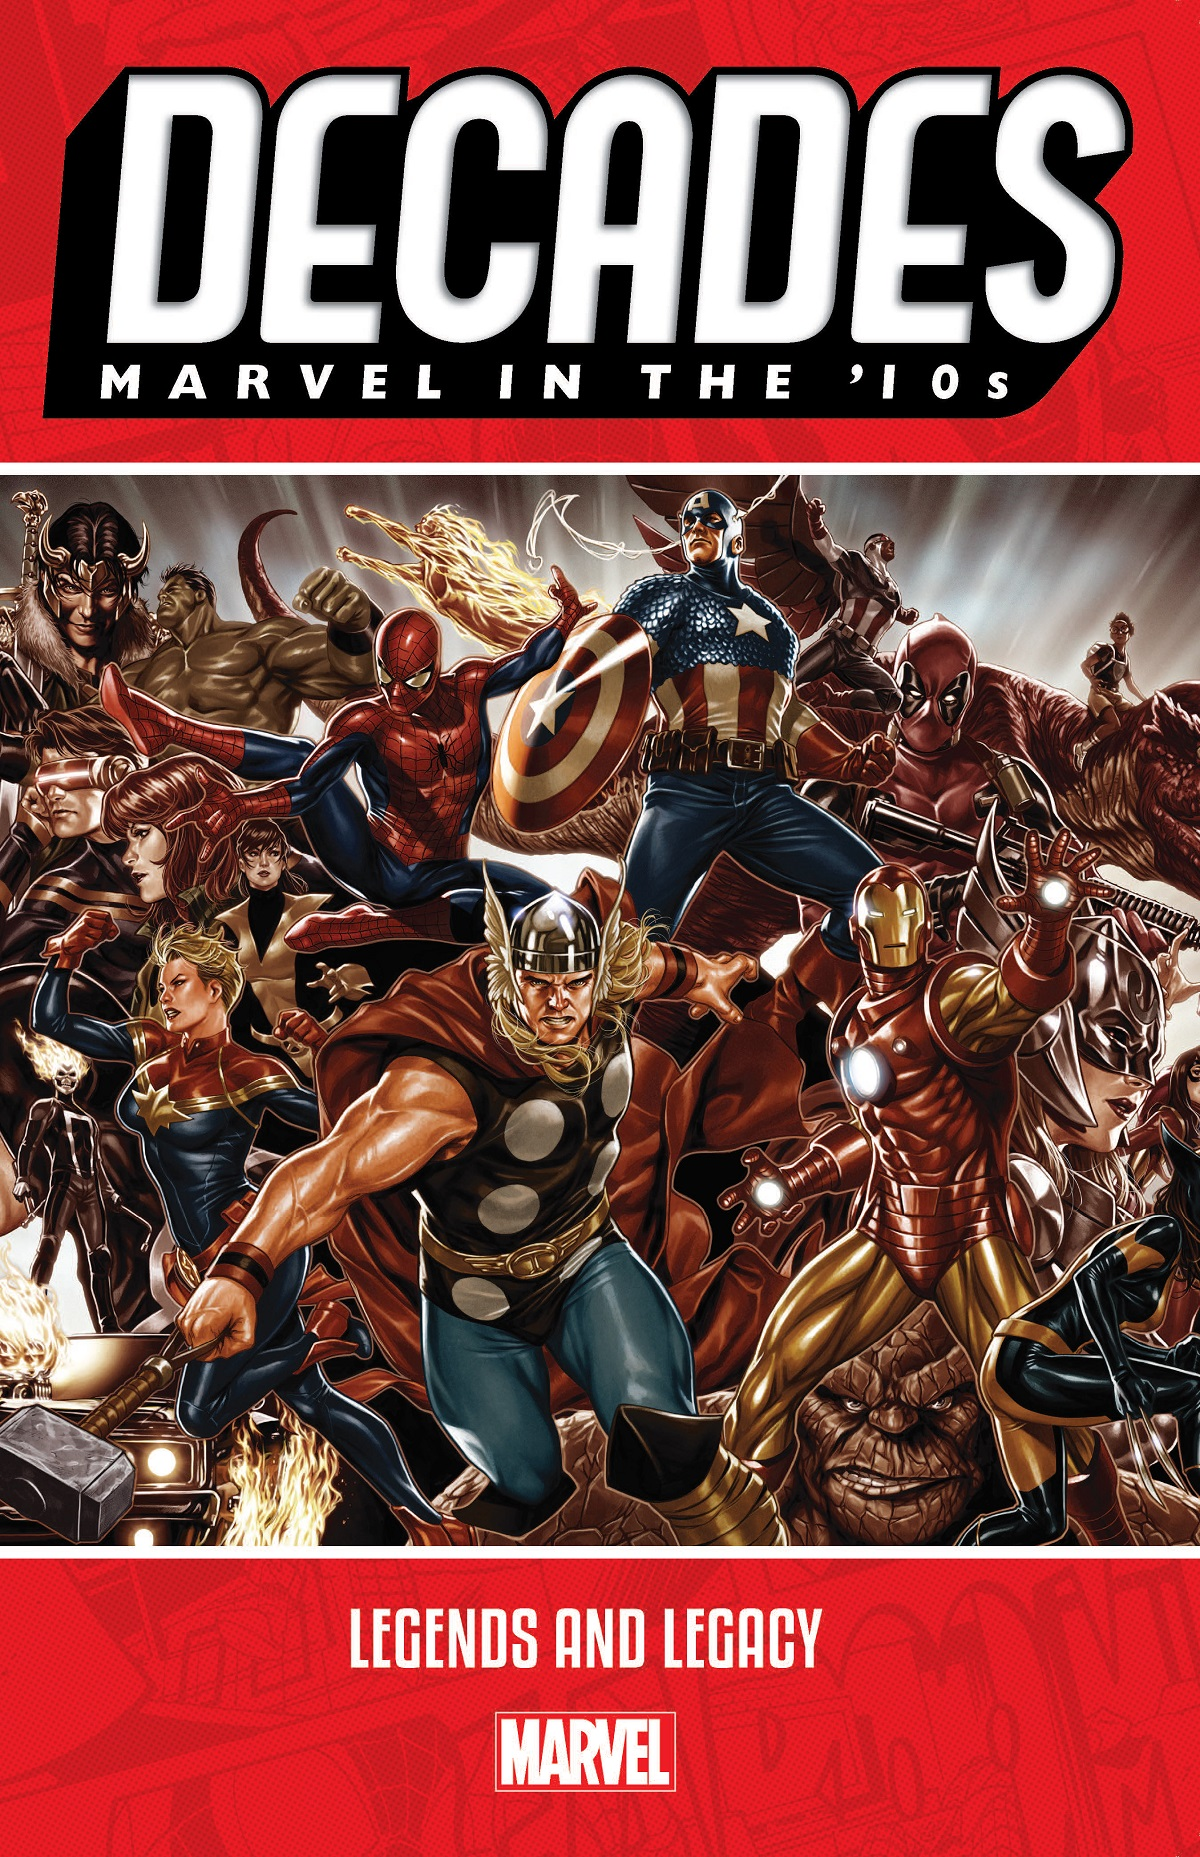 Decades: Marvel In The '10s - Legends And Legacy (Trade Paperback)